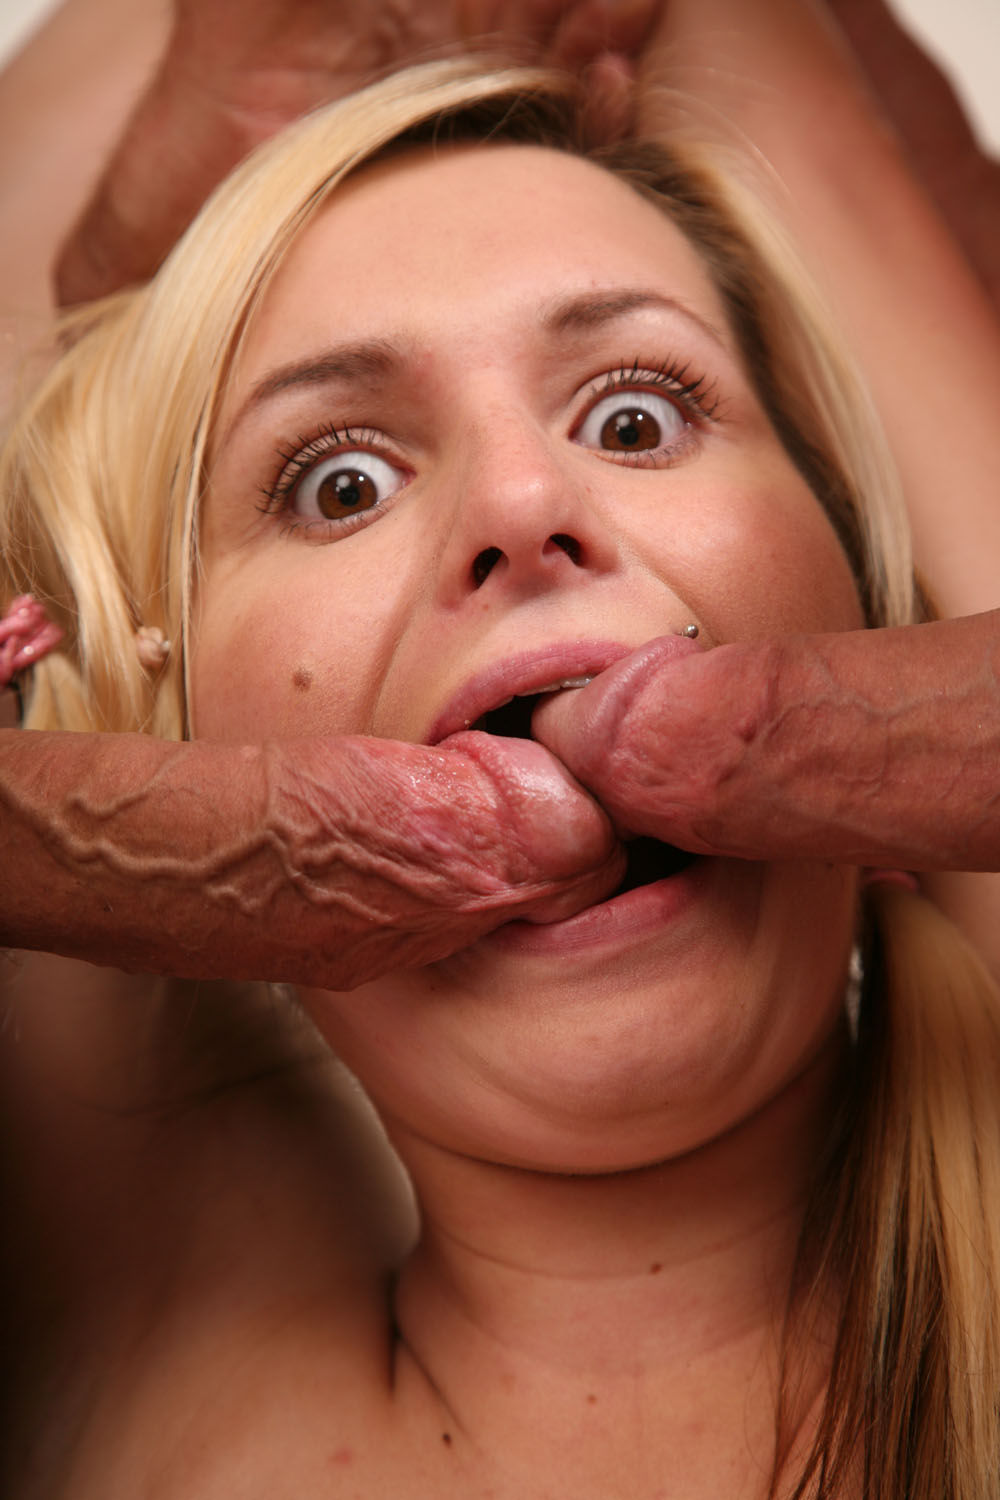 Amateur two cocks in her mouth